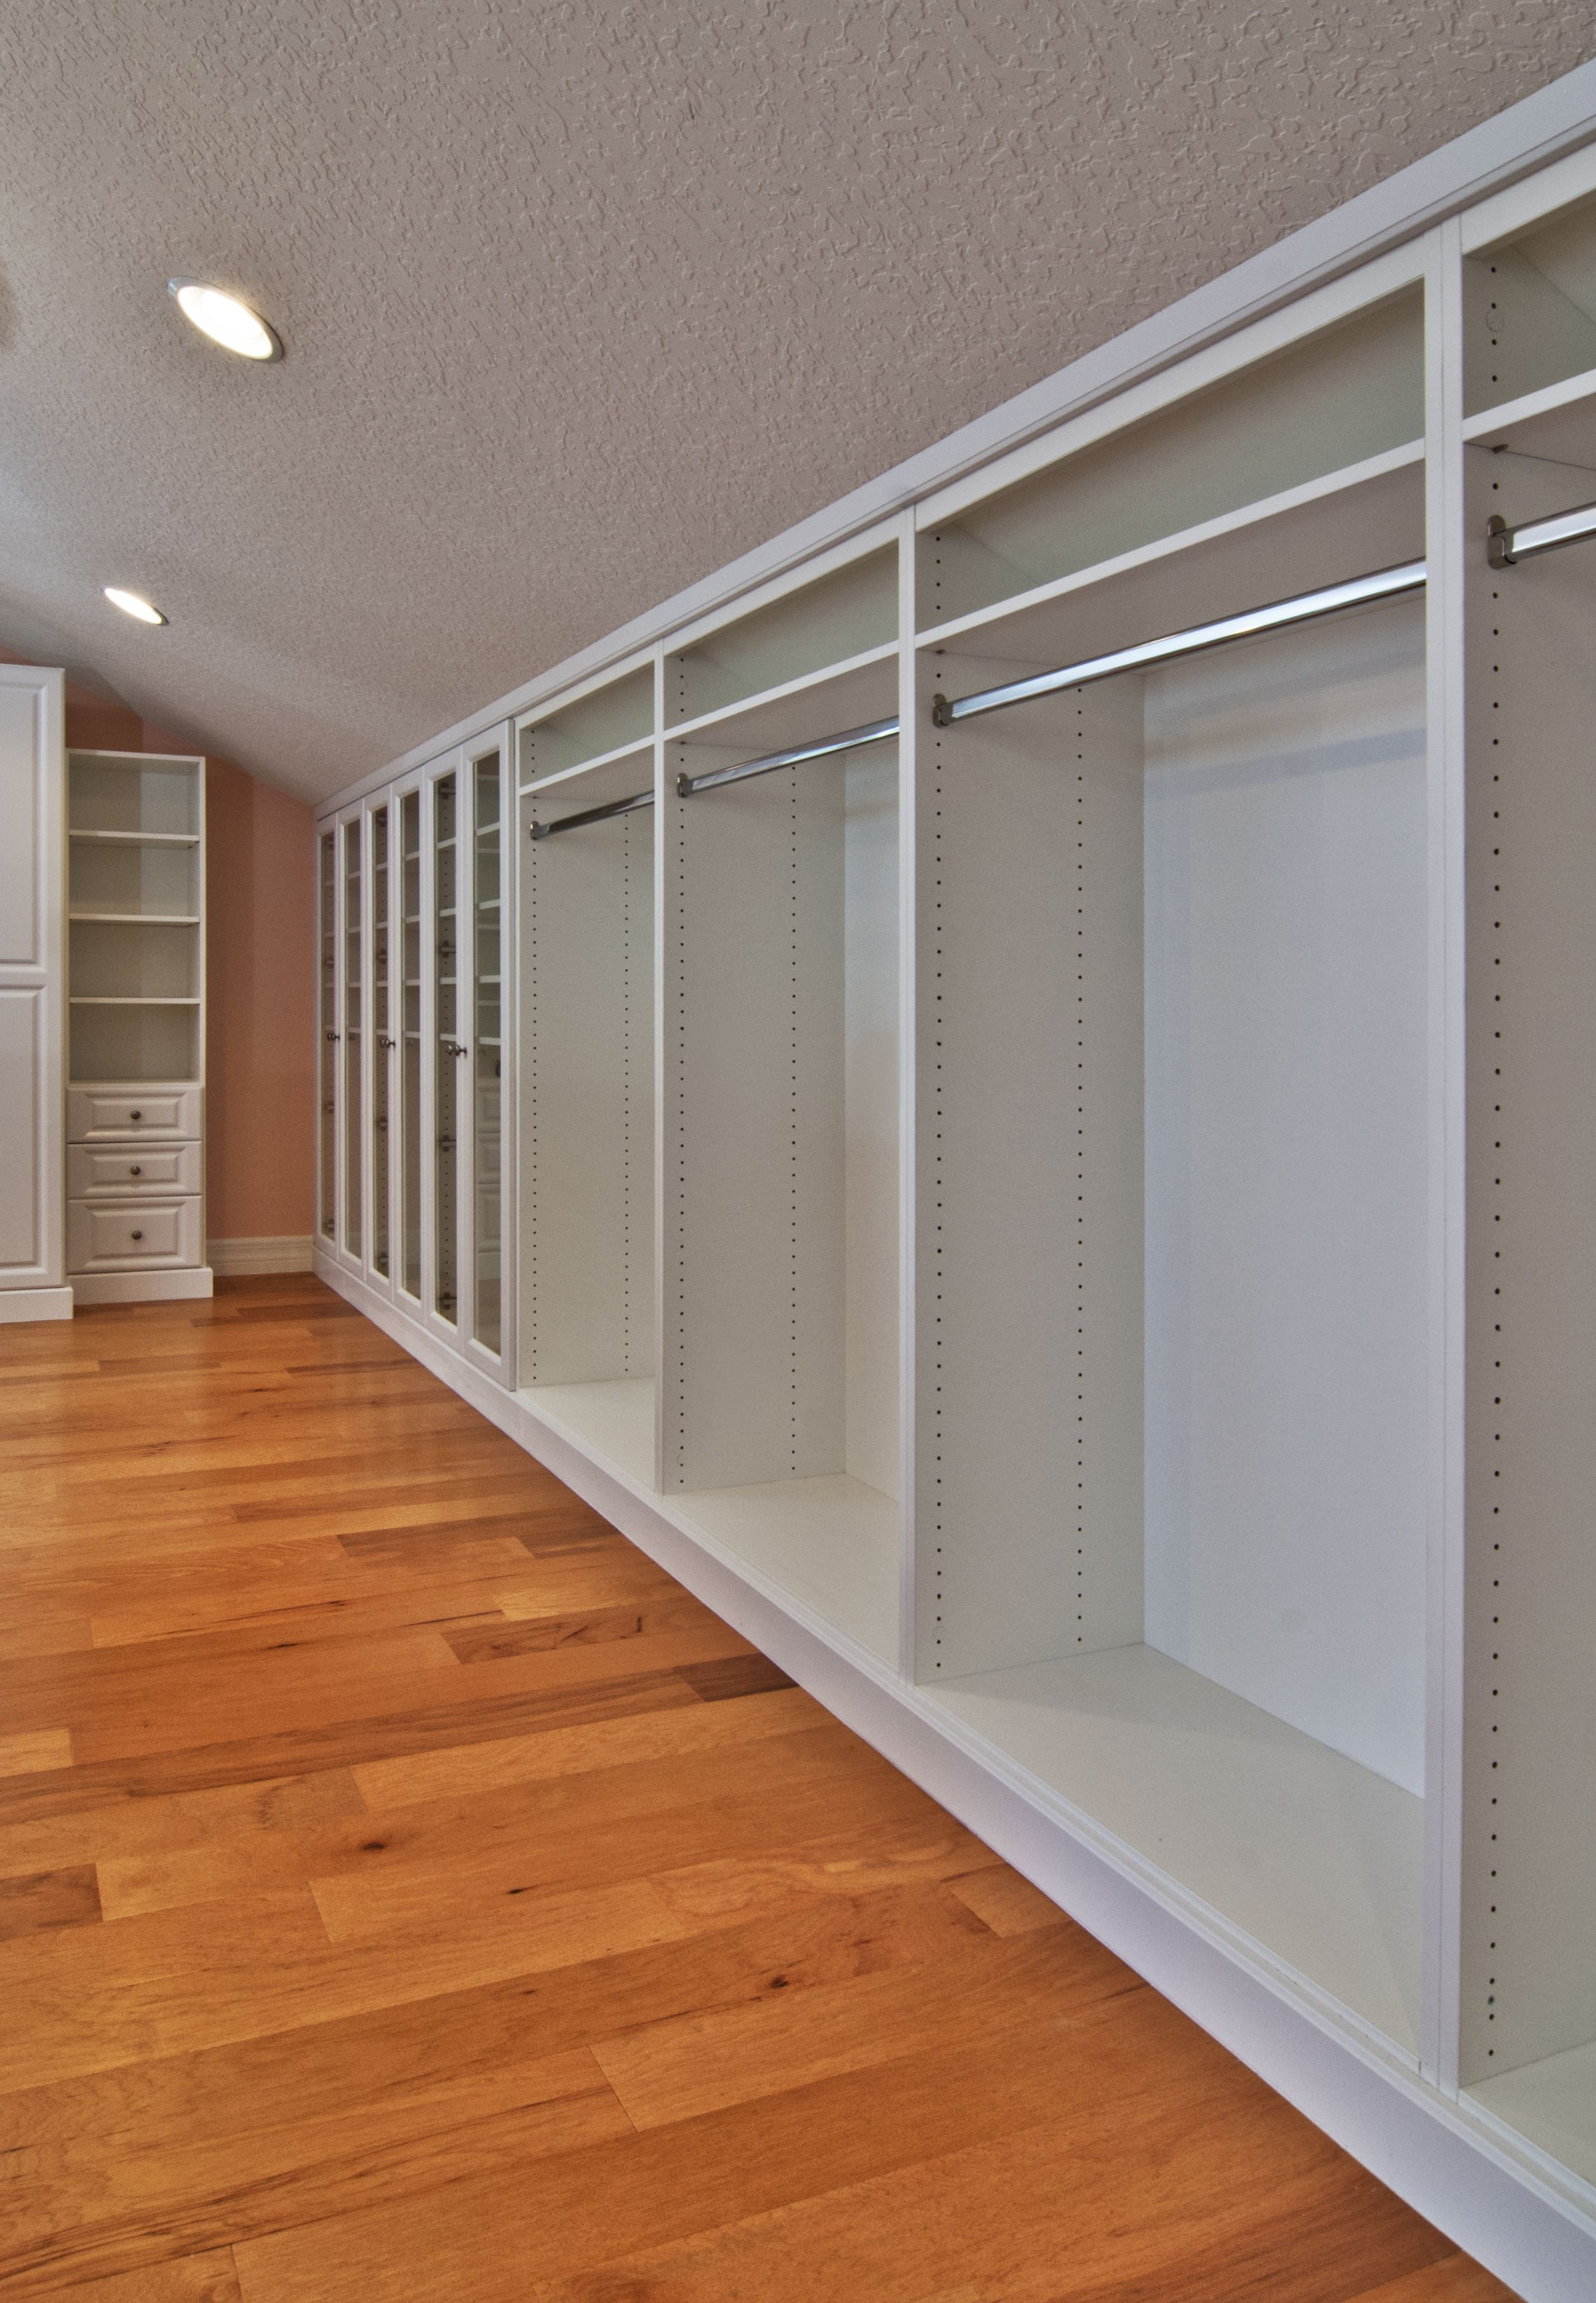 Best Master Closet White Inside Finished Attic With Angled Ceilings Closets Floor Systems 400 x 300